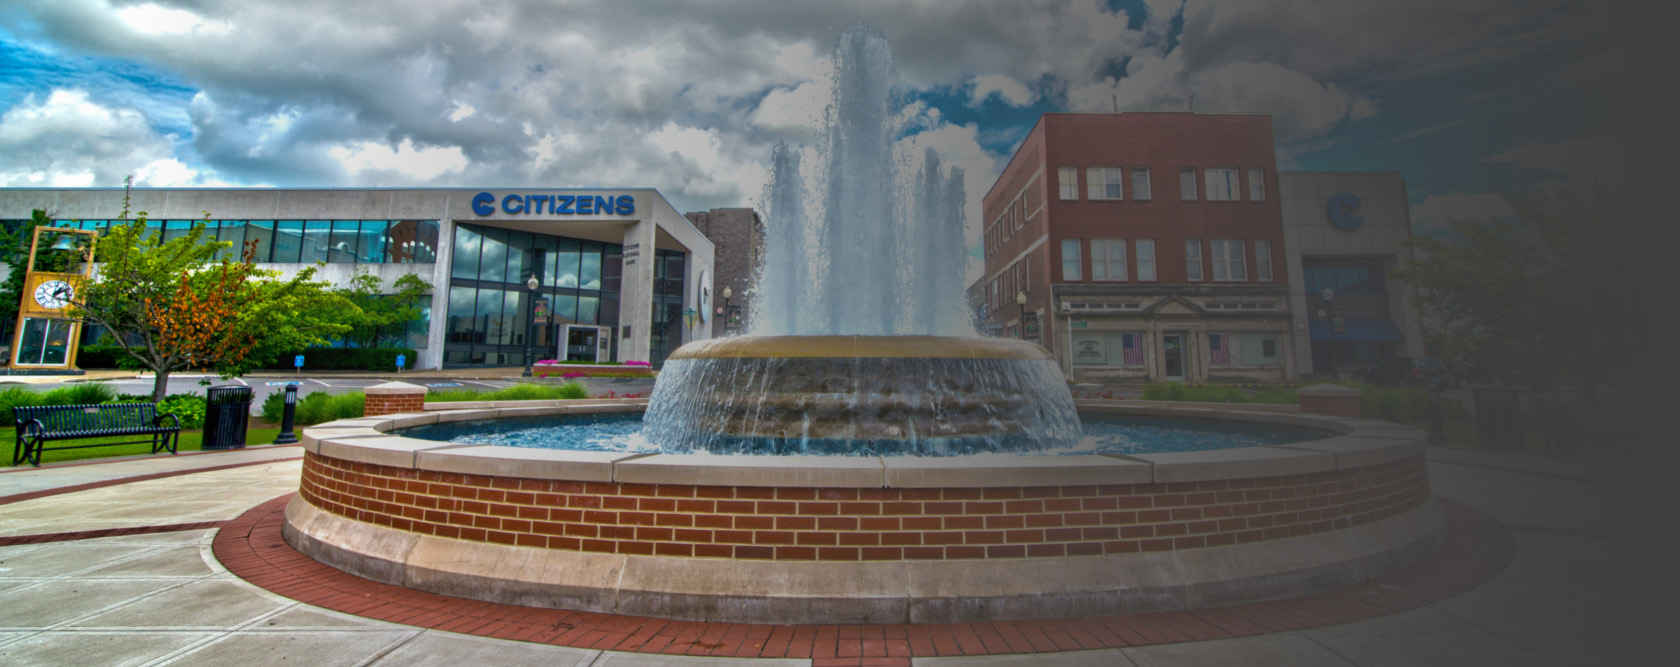 Somerset Square with Citizens Bank in background.